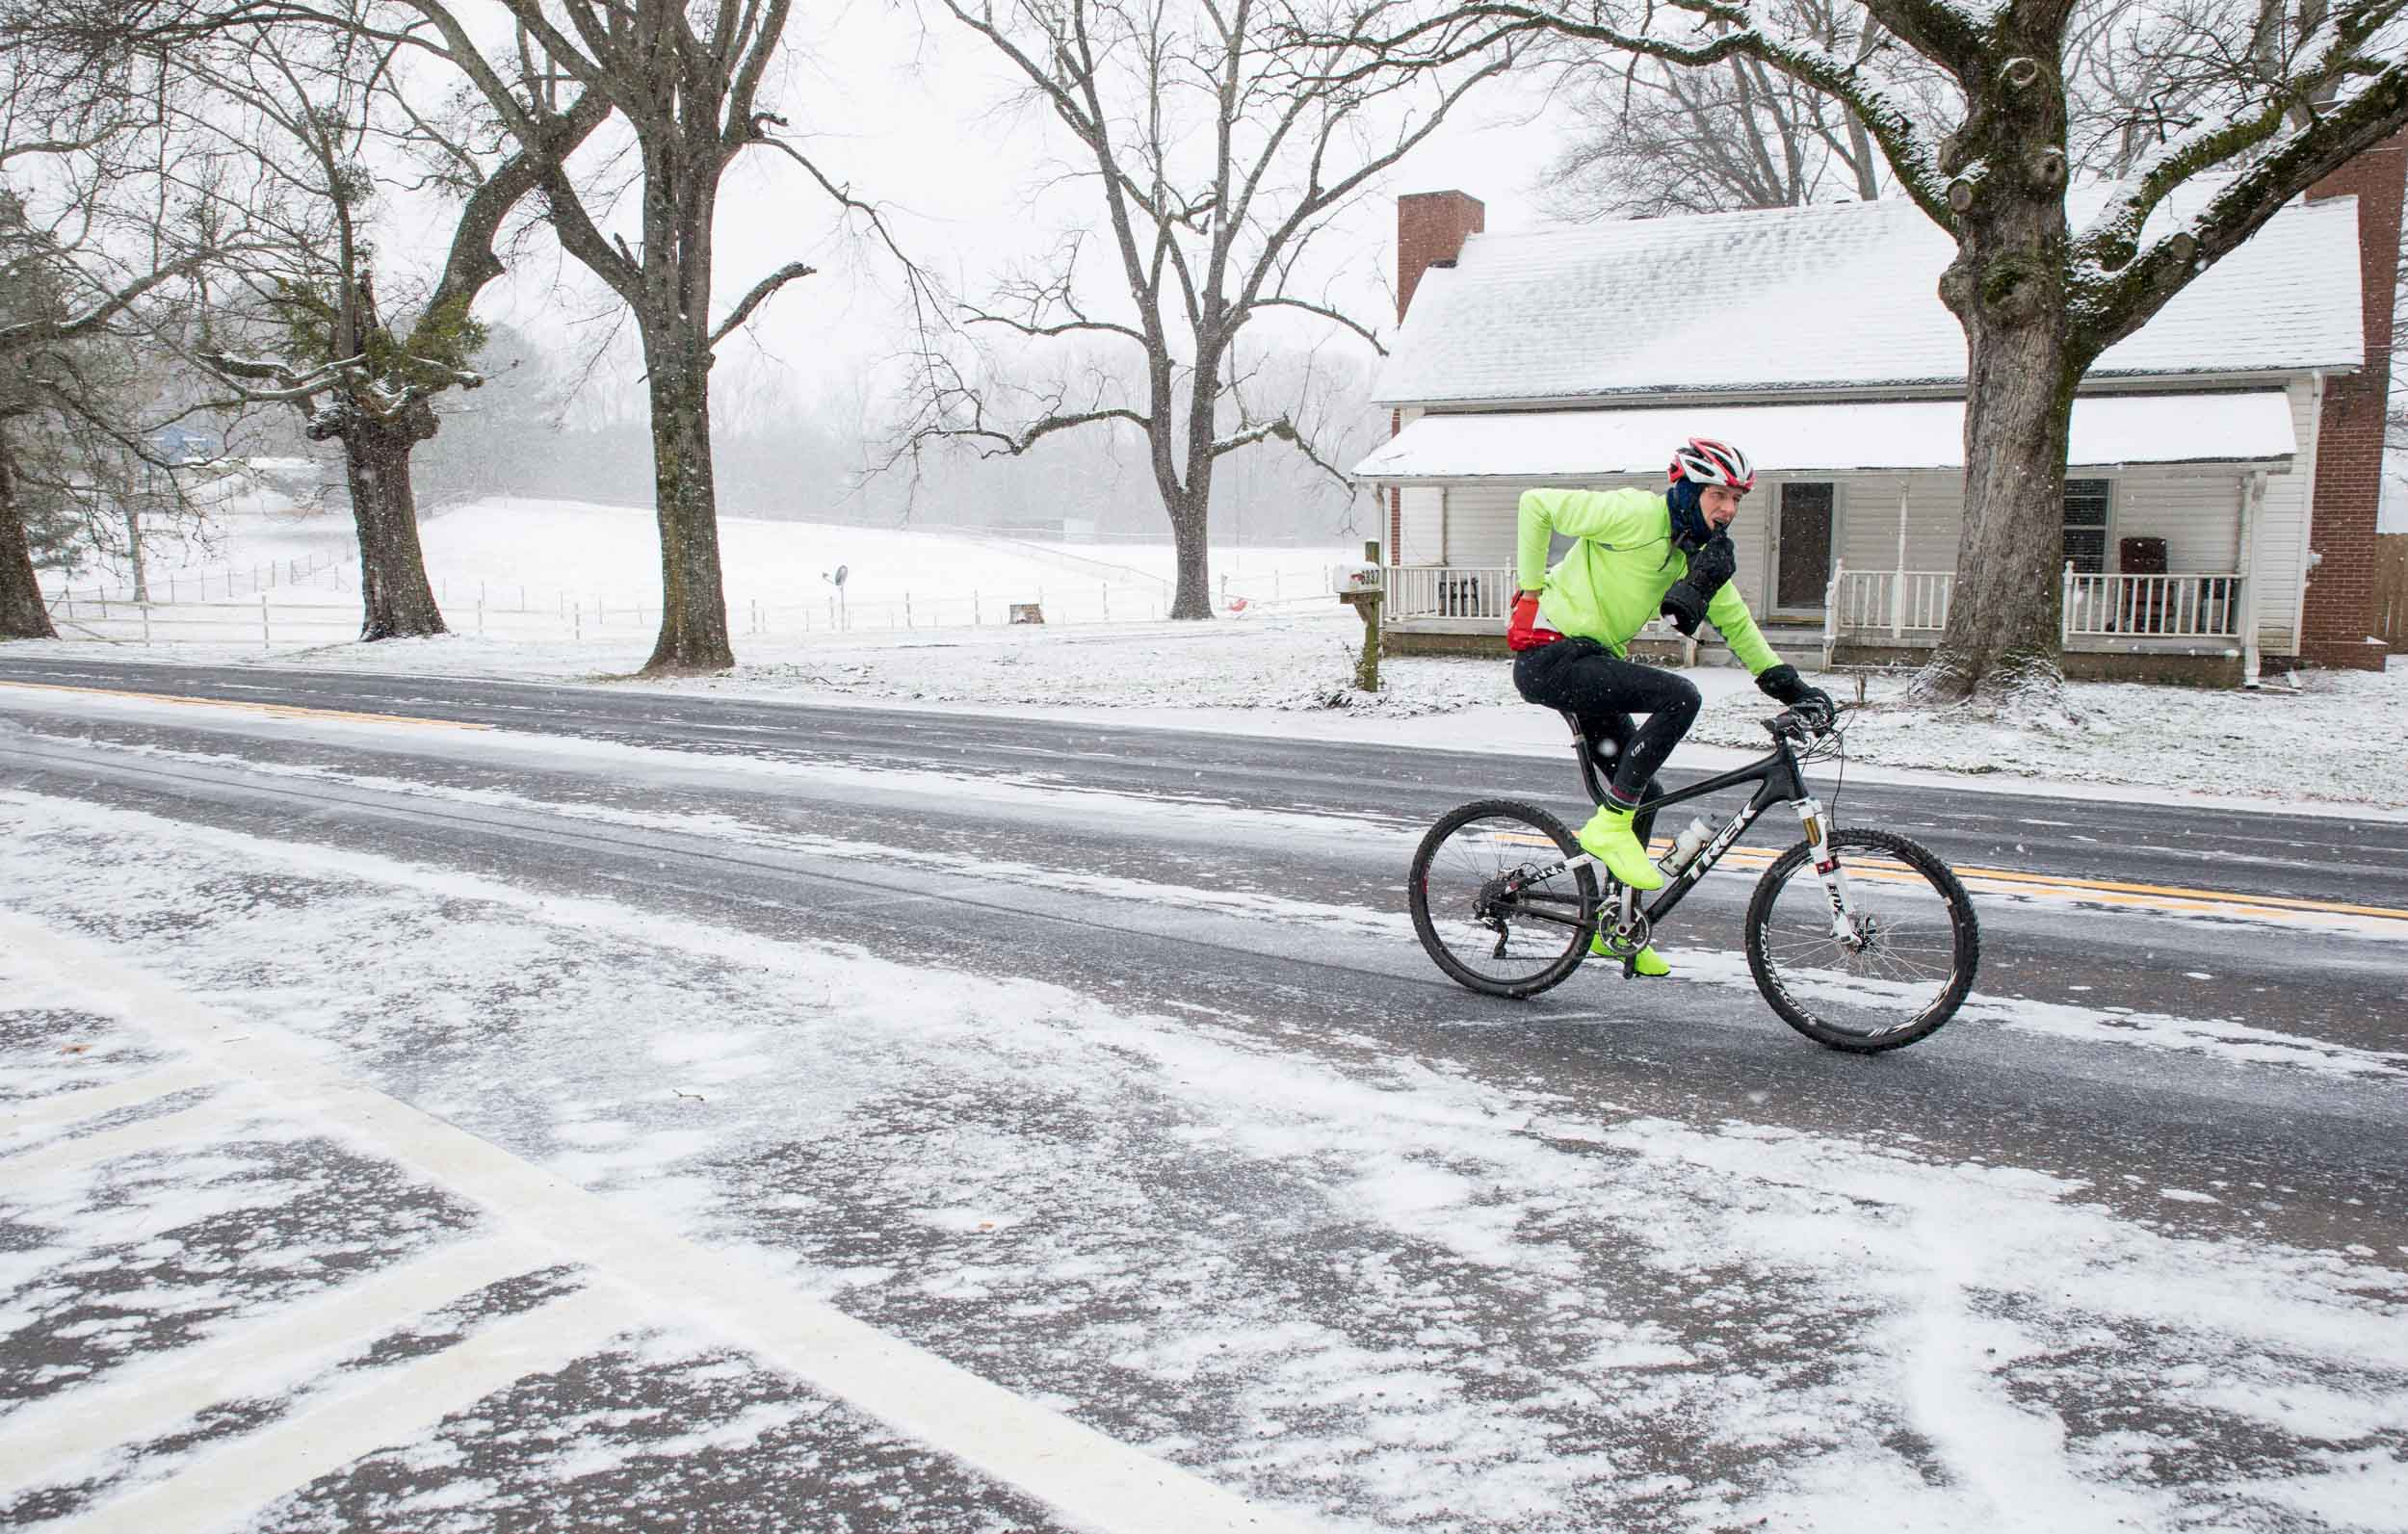 A cyclist rides on an ice covered street during a light snow fall, Saturday, Jan. 23, 2016, in Woodstock, Ga.